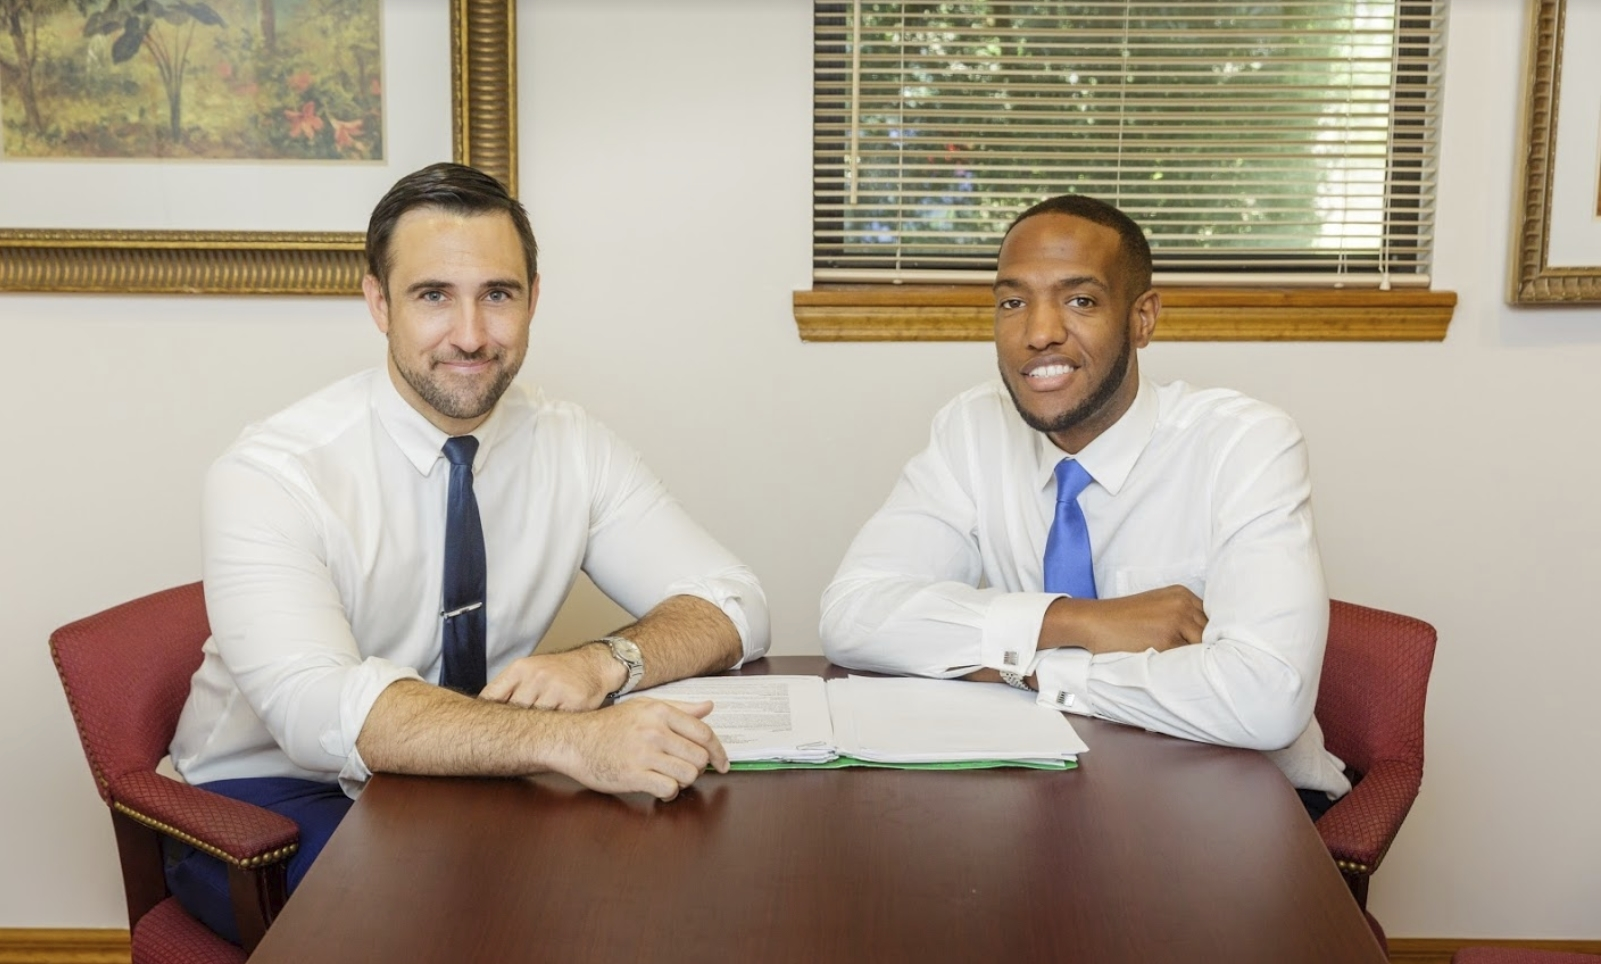 Smith & Eulo Law Firm - Criminal Defense, DUI & Car Accident Lawyers